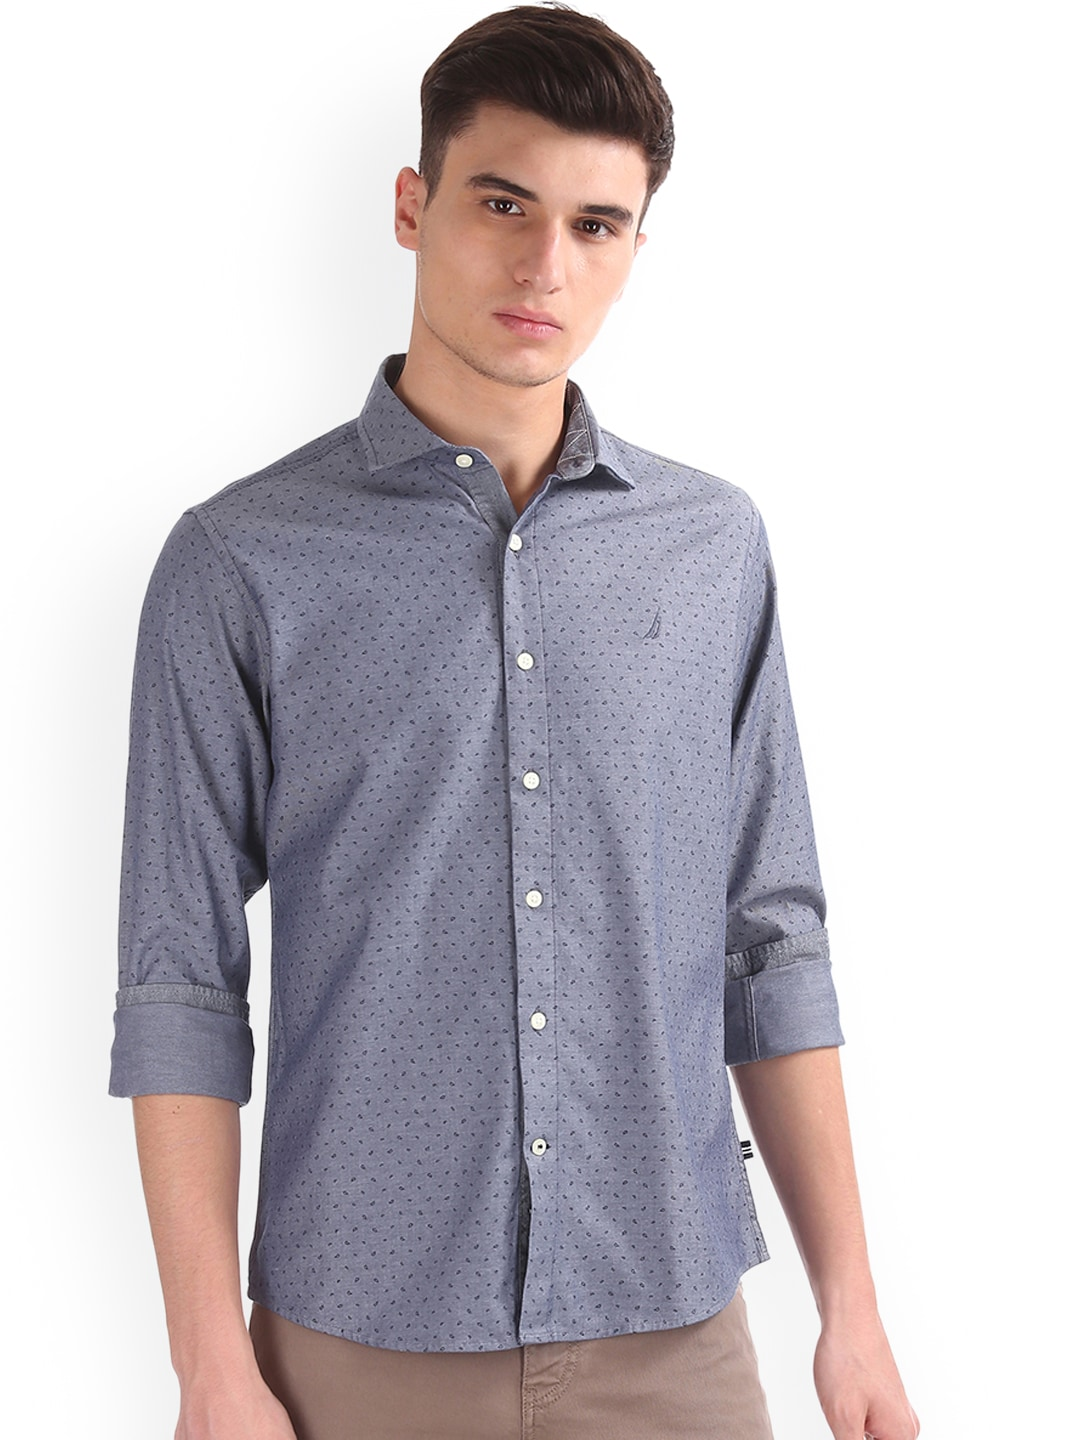 a5eb7fa4d3 How To Wear A Mens Button Down Shirt With Leggings - BCD Tofu House